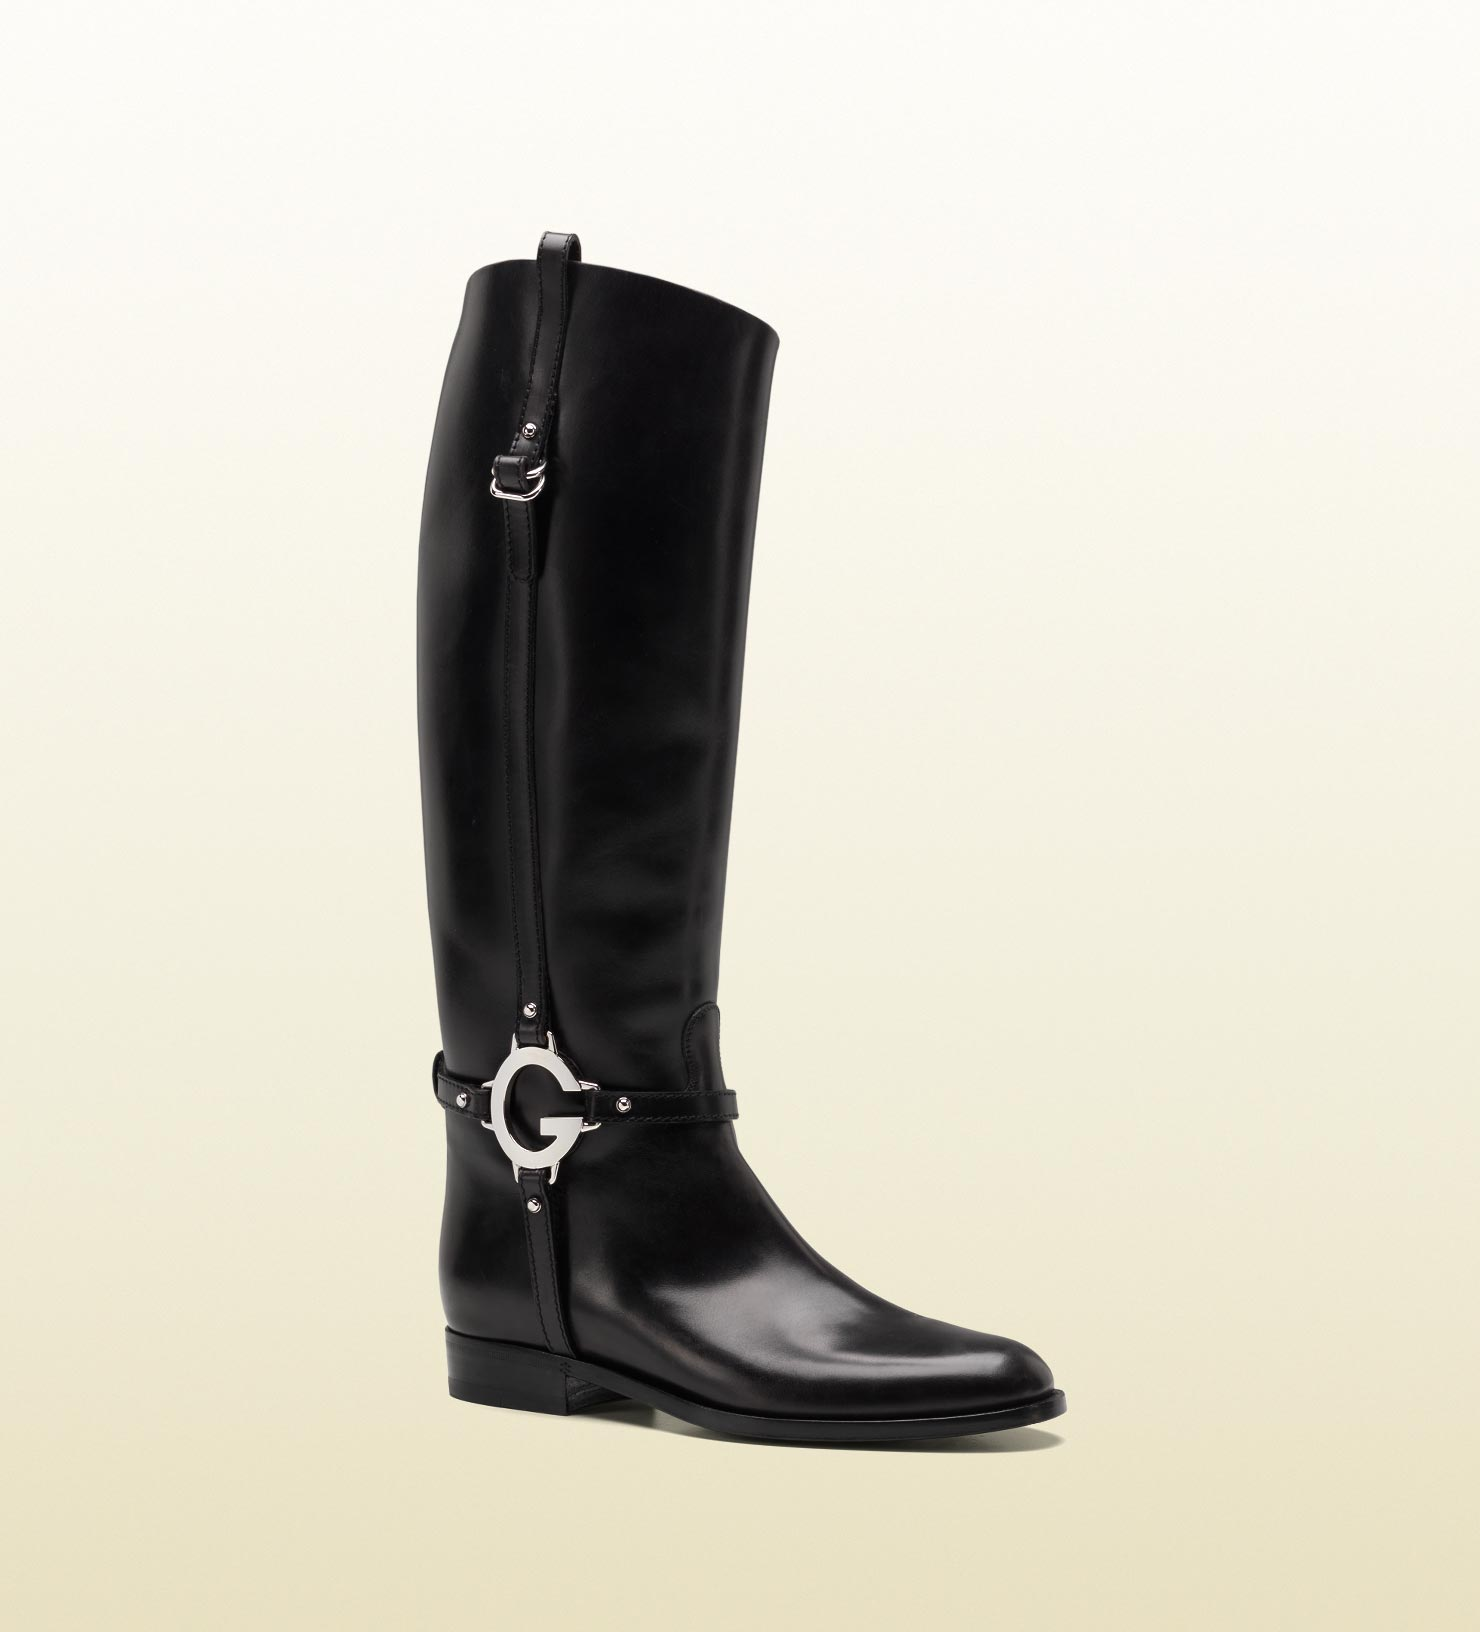 gucci new flat boot with g detail